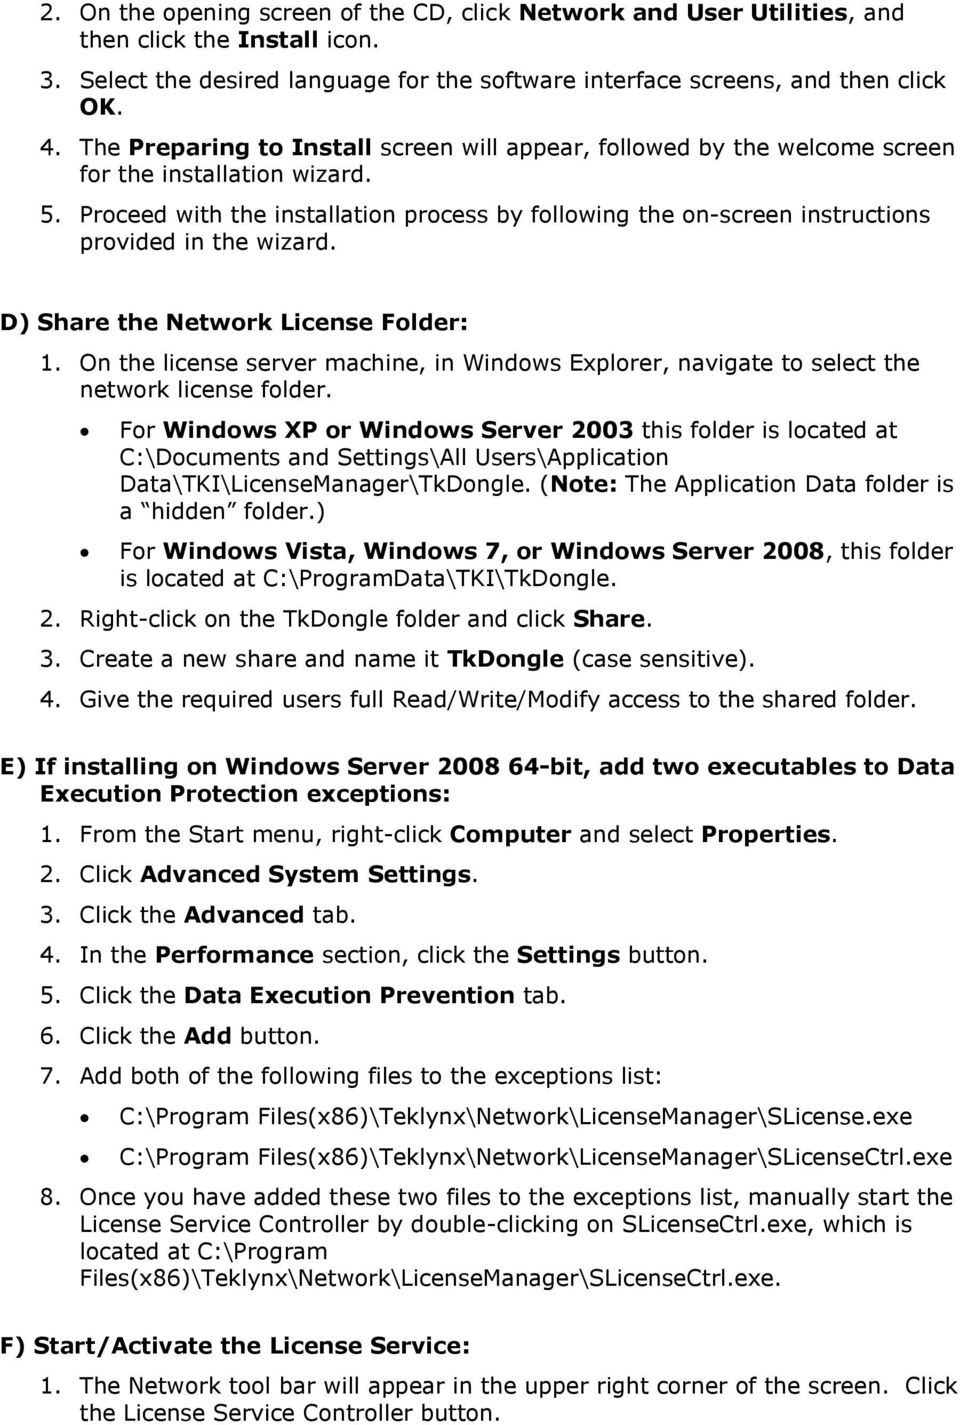 On the license server machine, in Windows Explorer, navigate to select the network license folder.